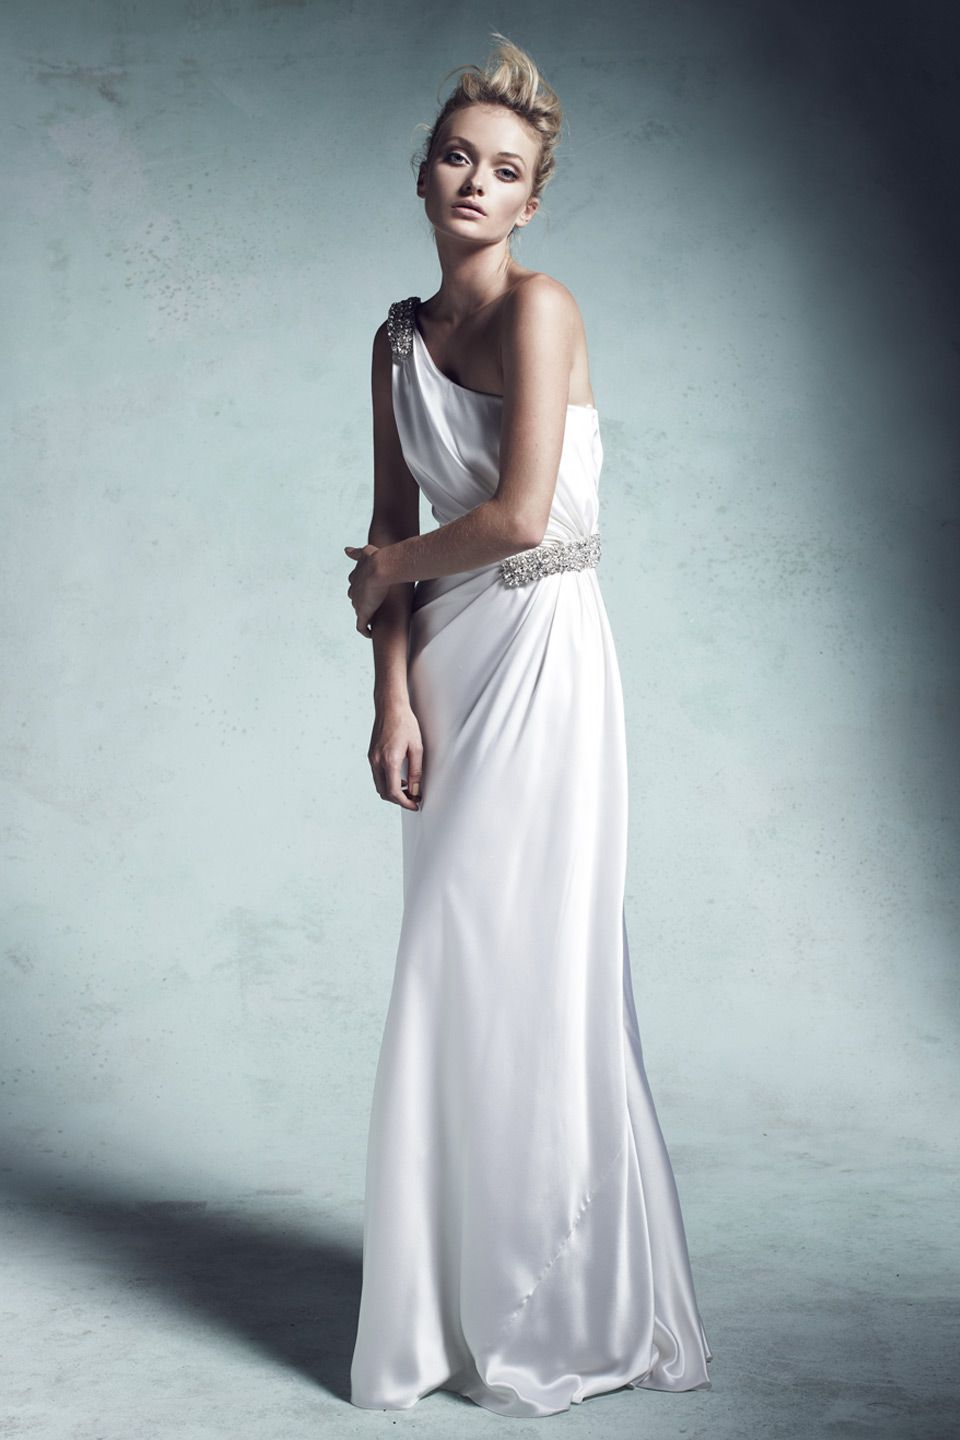 Look6_12115075B_Olivia_Silk-satin-asymmetric-embellished-gown.jpg (960×1440)